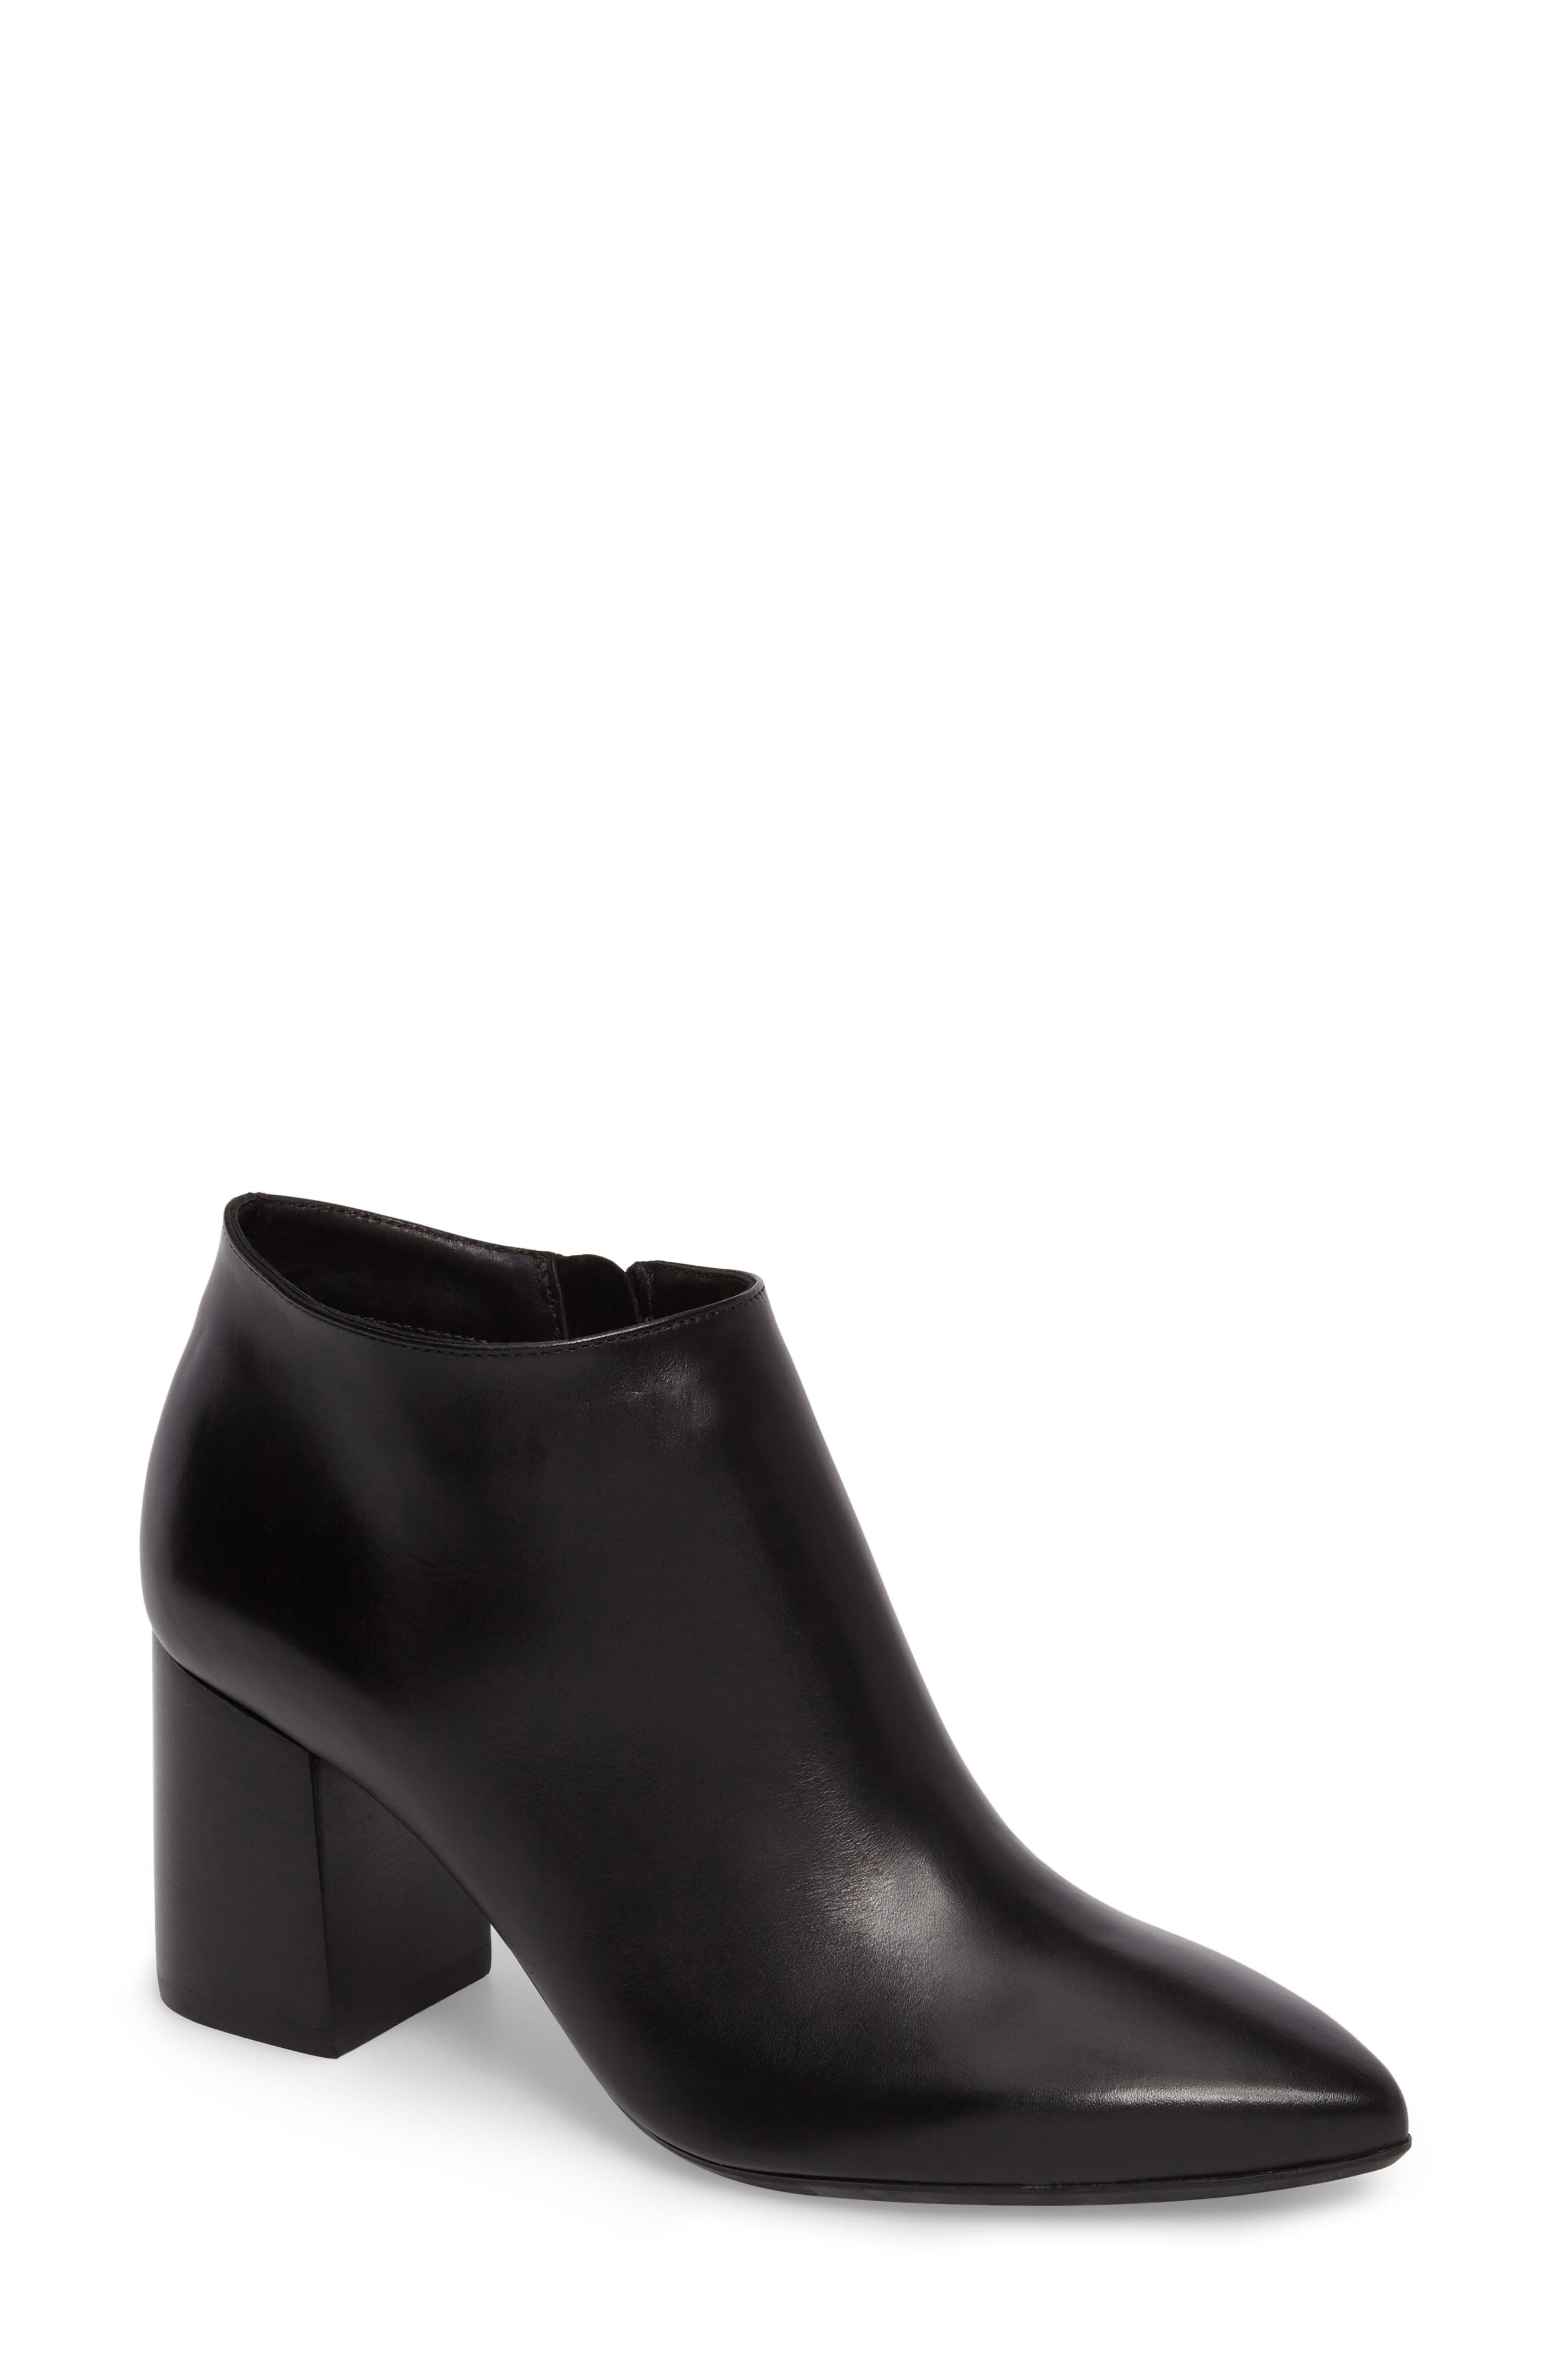 Alternate Image 1 Selected - Taryn Rose Maria Pointy Toe Bootie (Women)